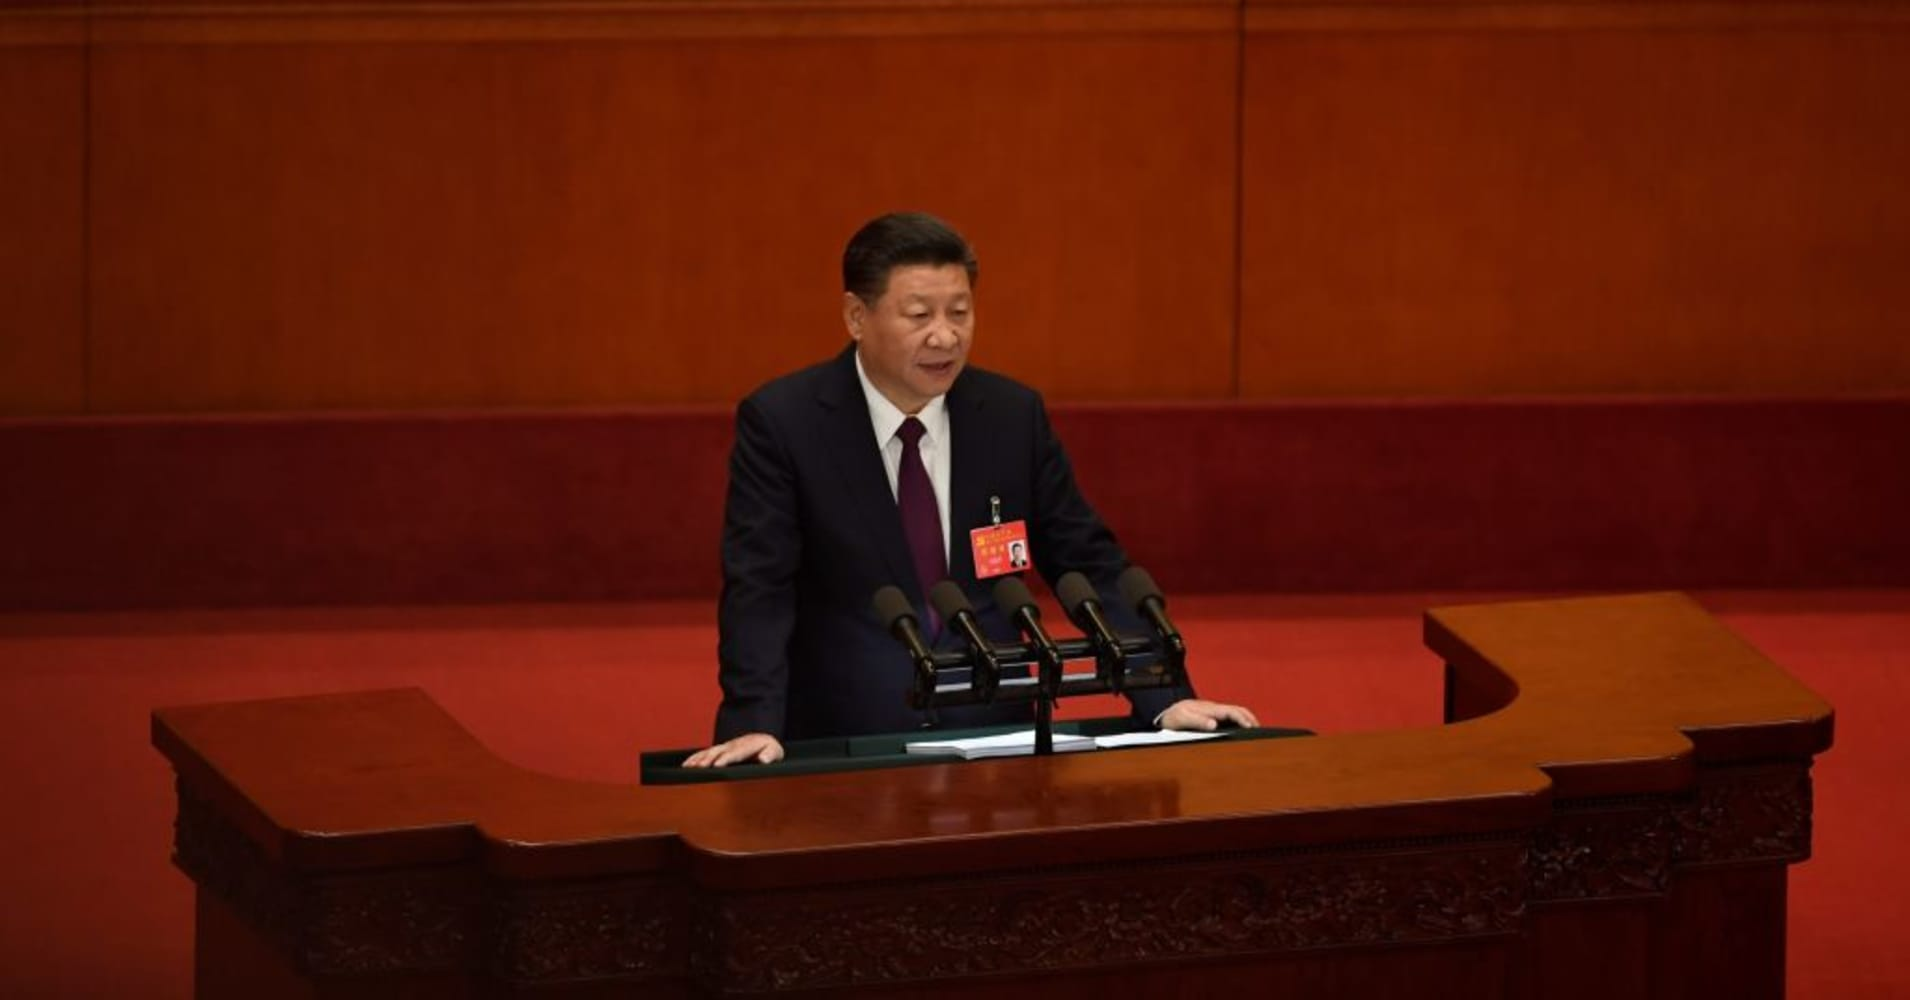 Chinese President Xi Jinping touts successes of 'socialism' at Communist Party Congress